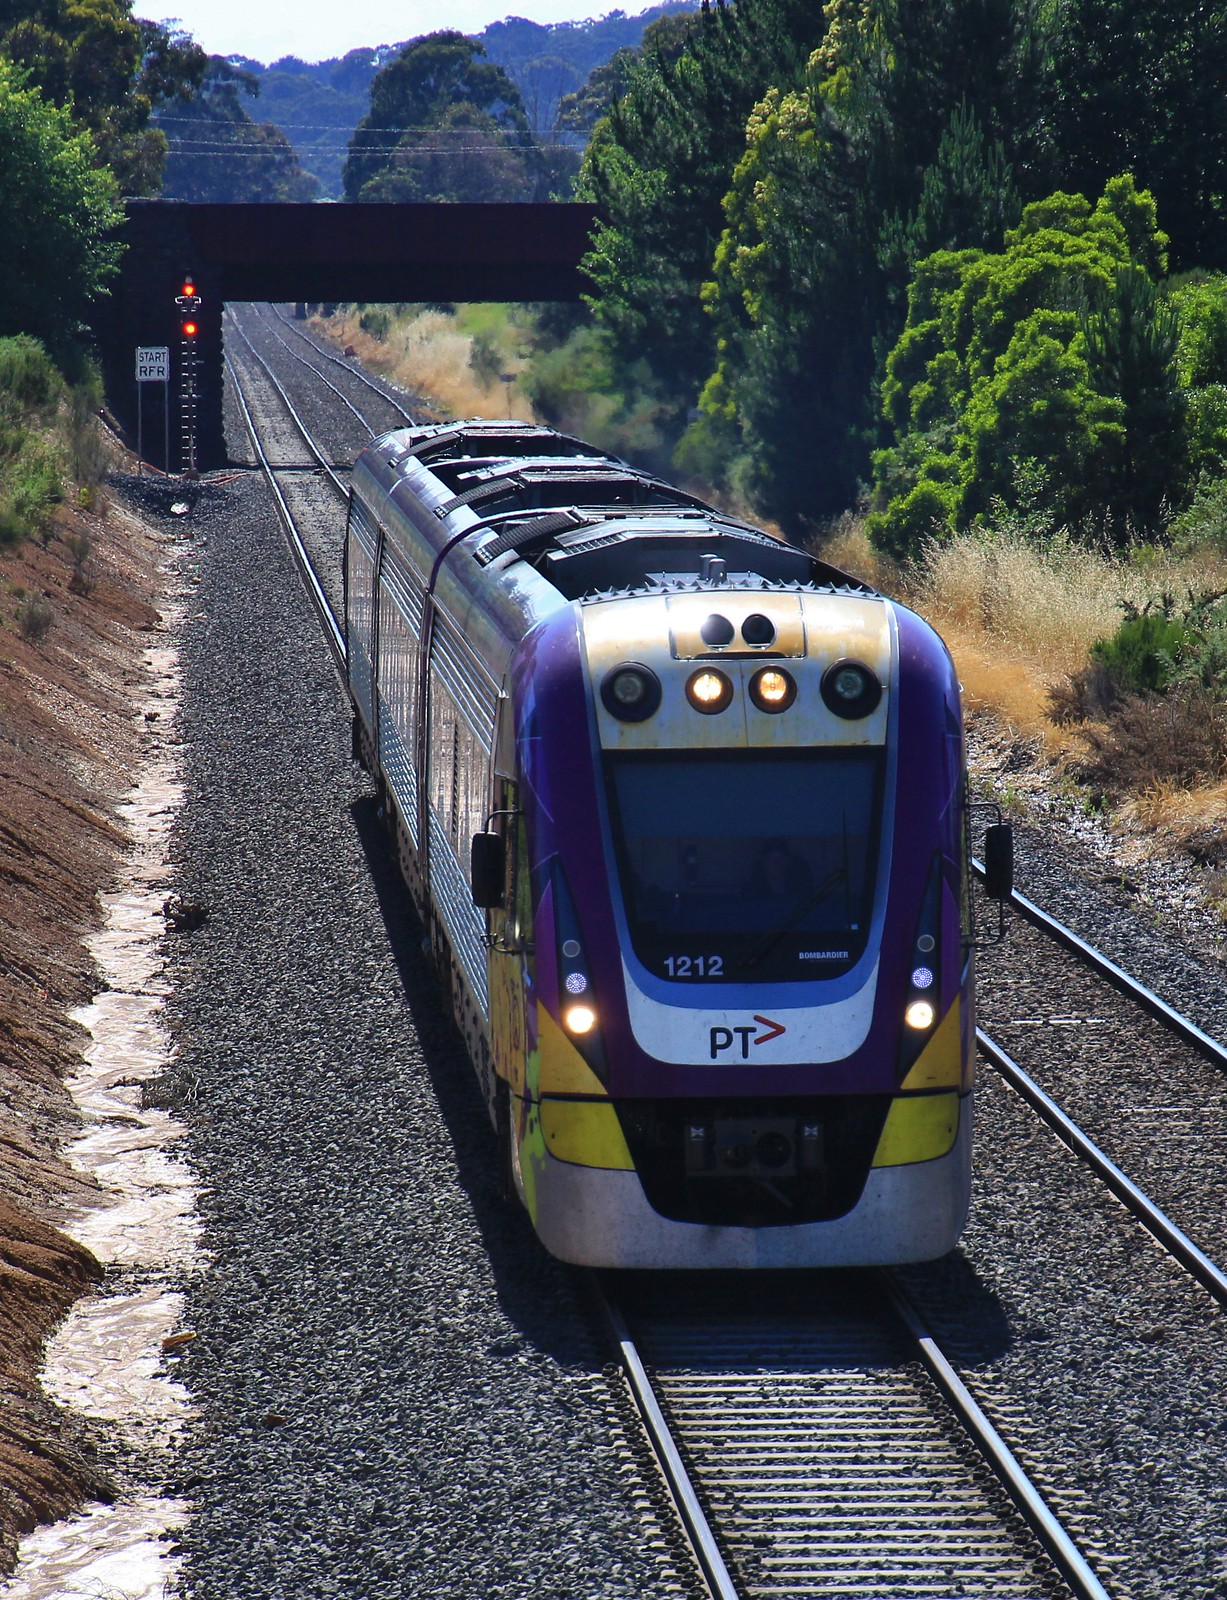 VL12 arrives into Ballarat after running a service from Melbourne by bukk05